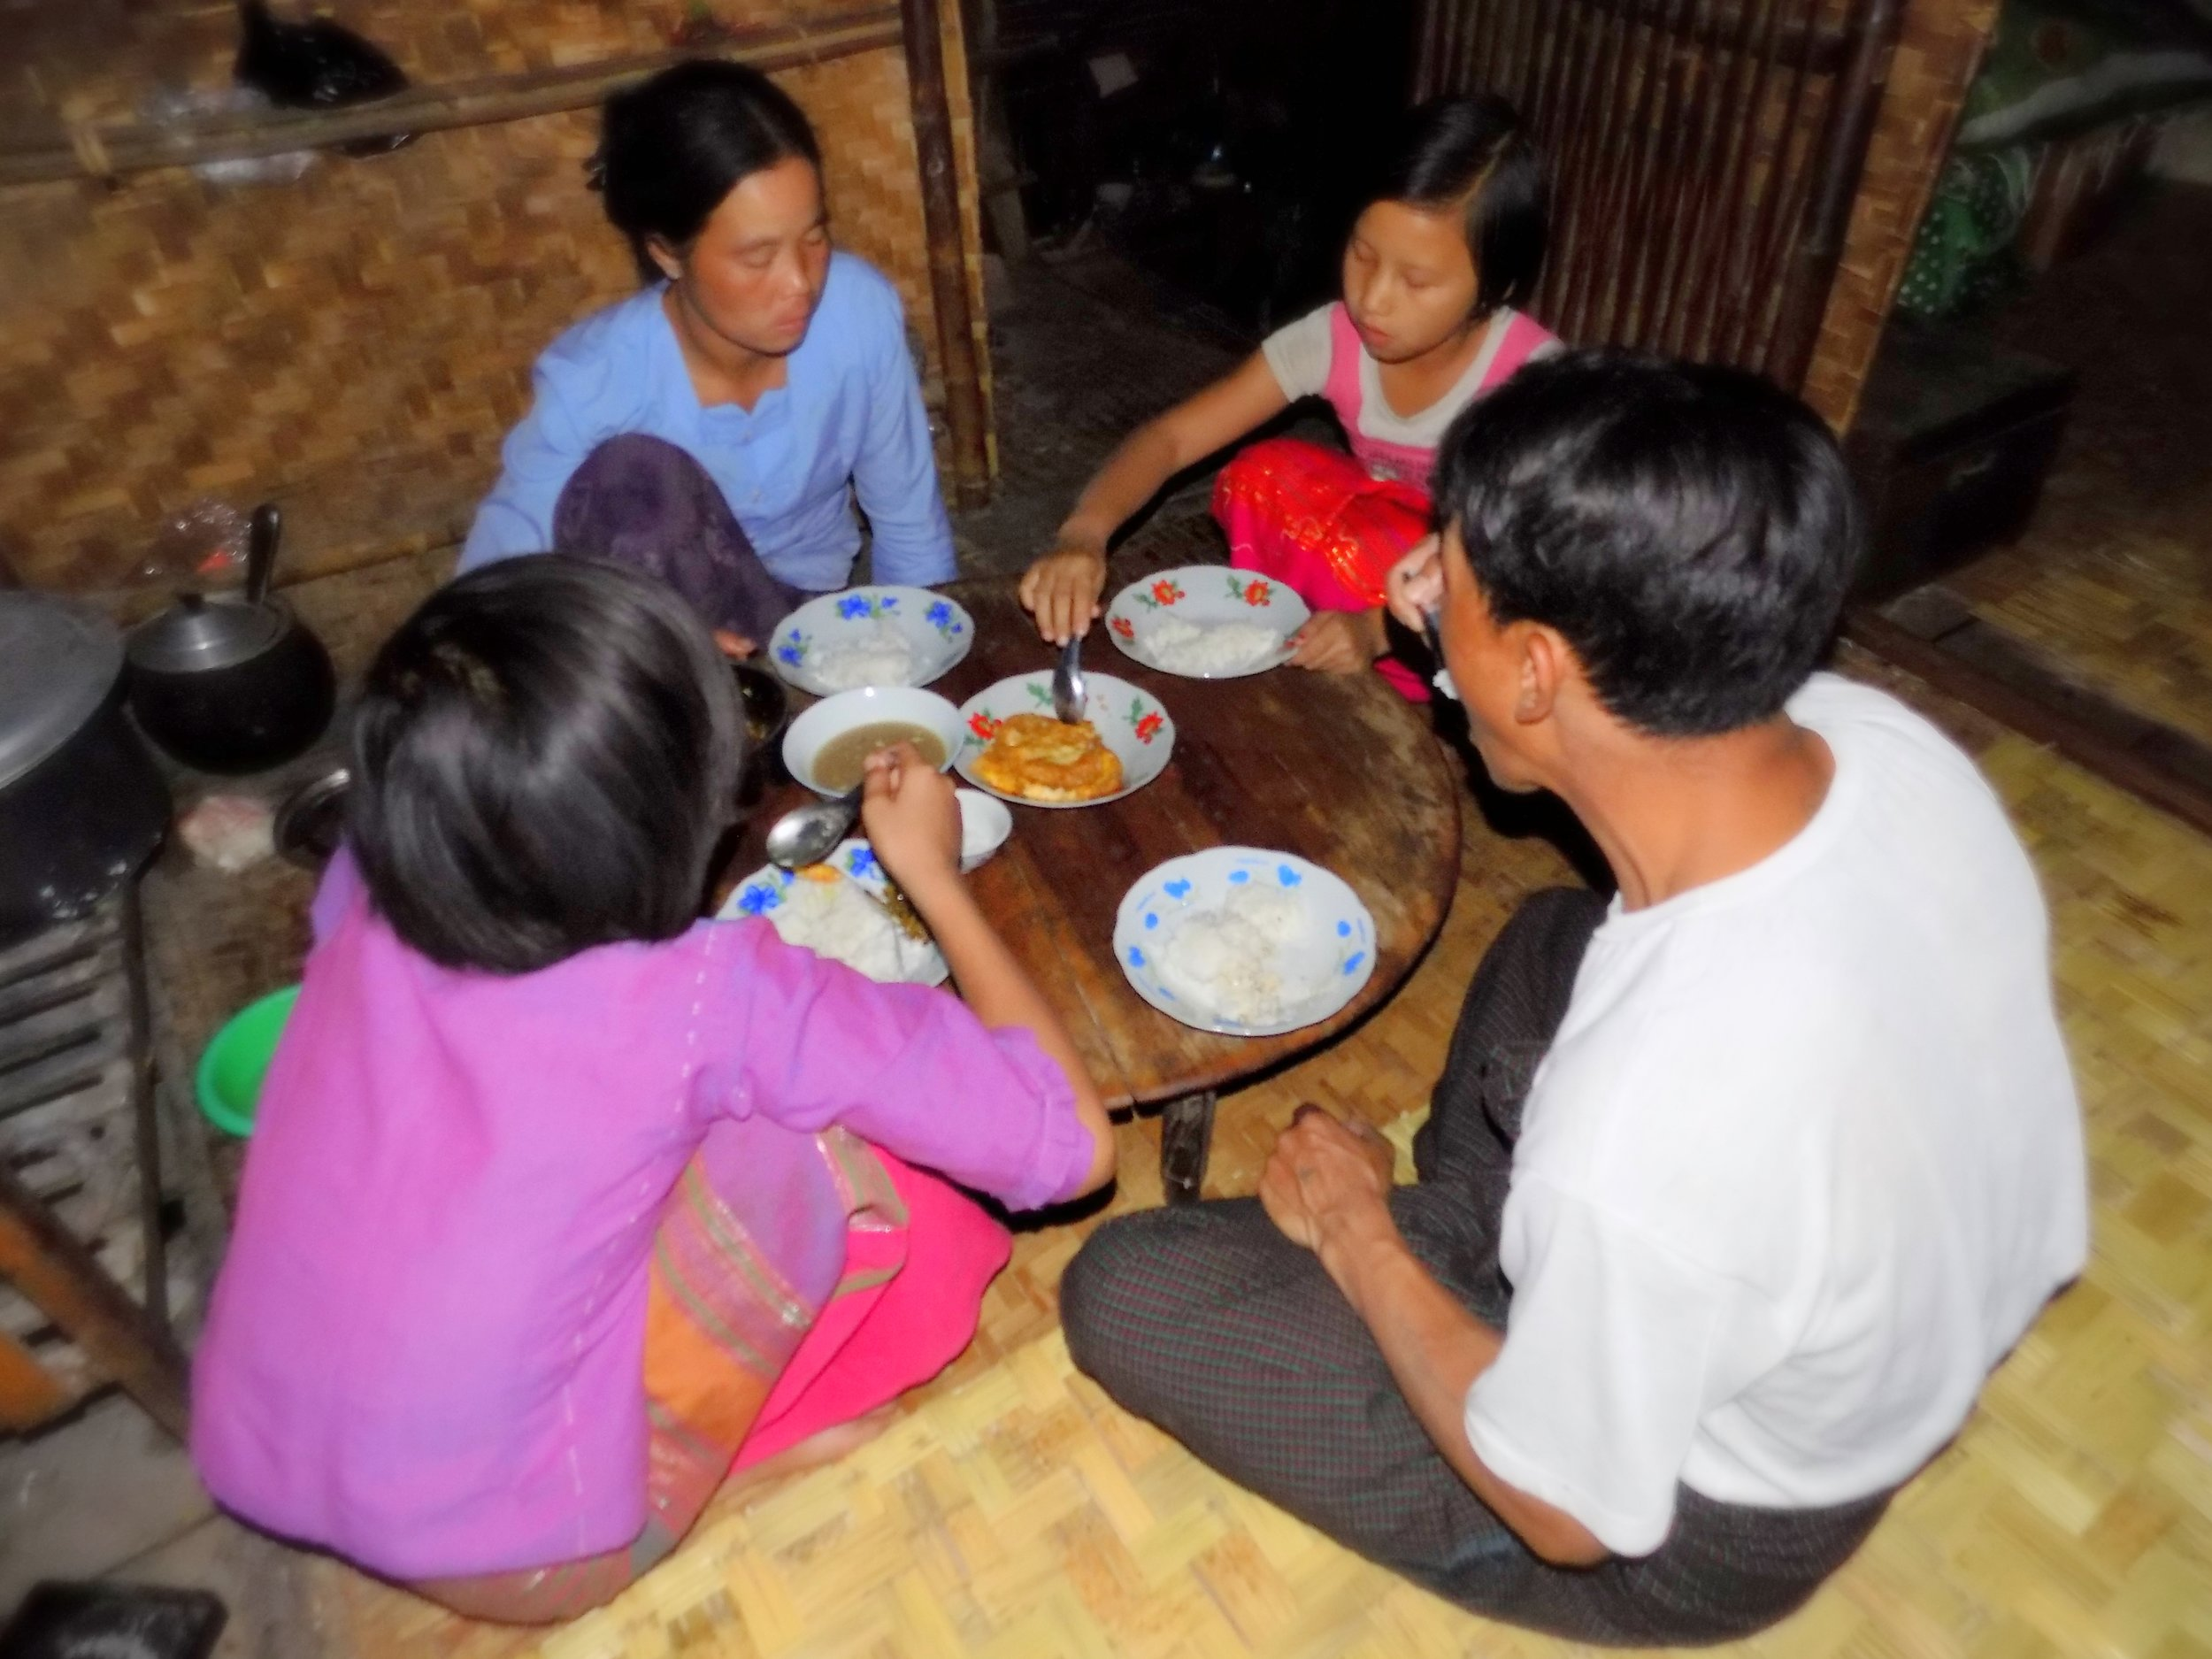 Nung Lao Ngun has four other people in her family: her mother, father, older sister, and younger brother.